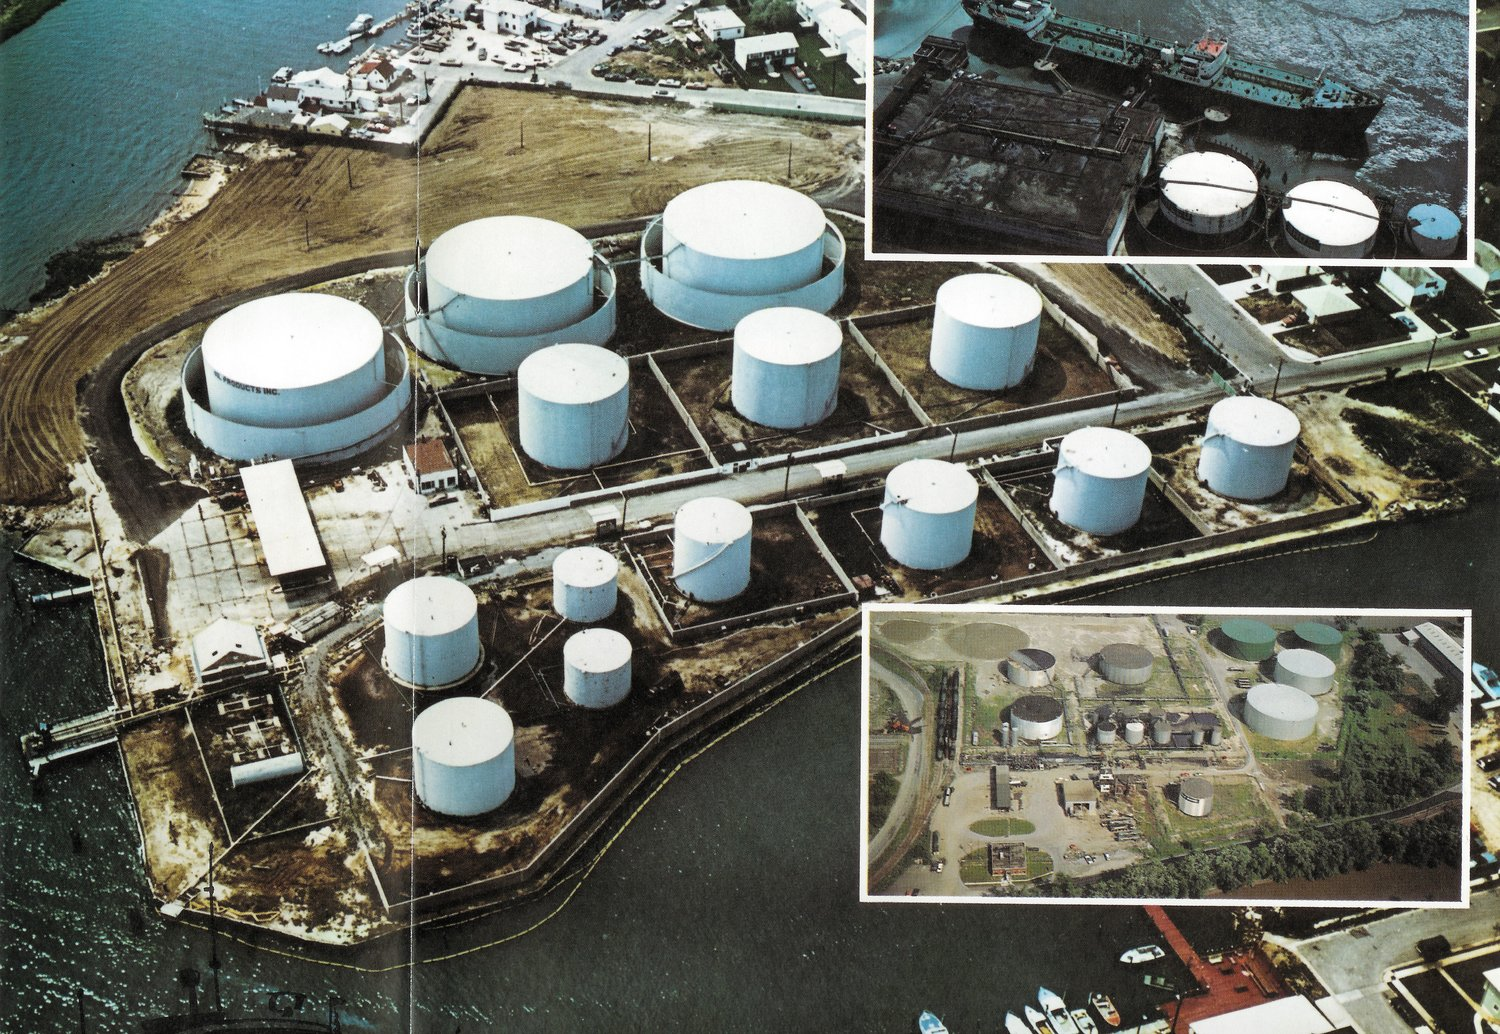 The Harbor Isle site was contaminated by the Cibro petroleum-storage facility.